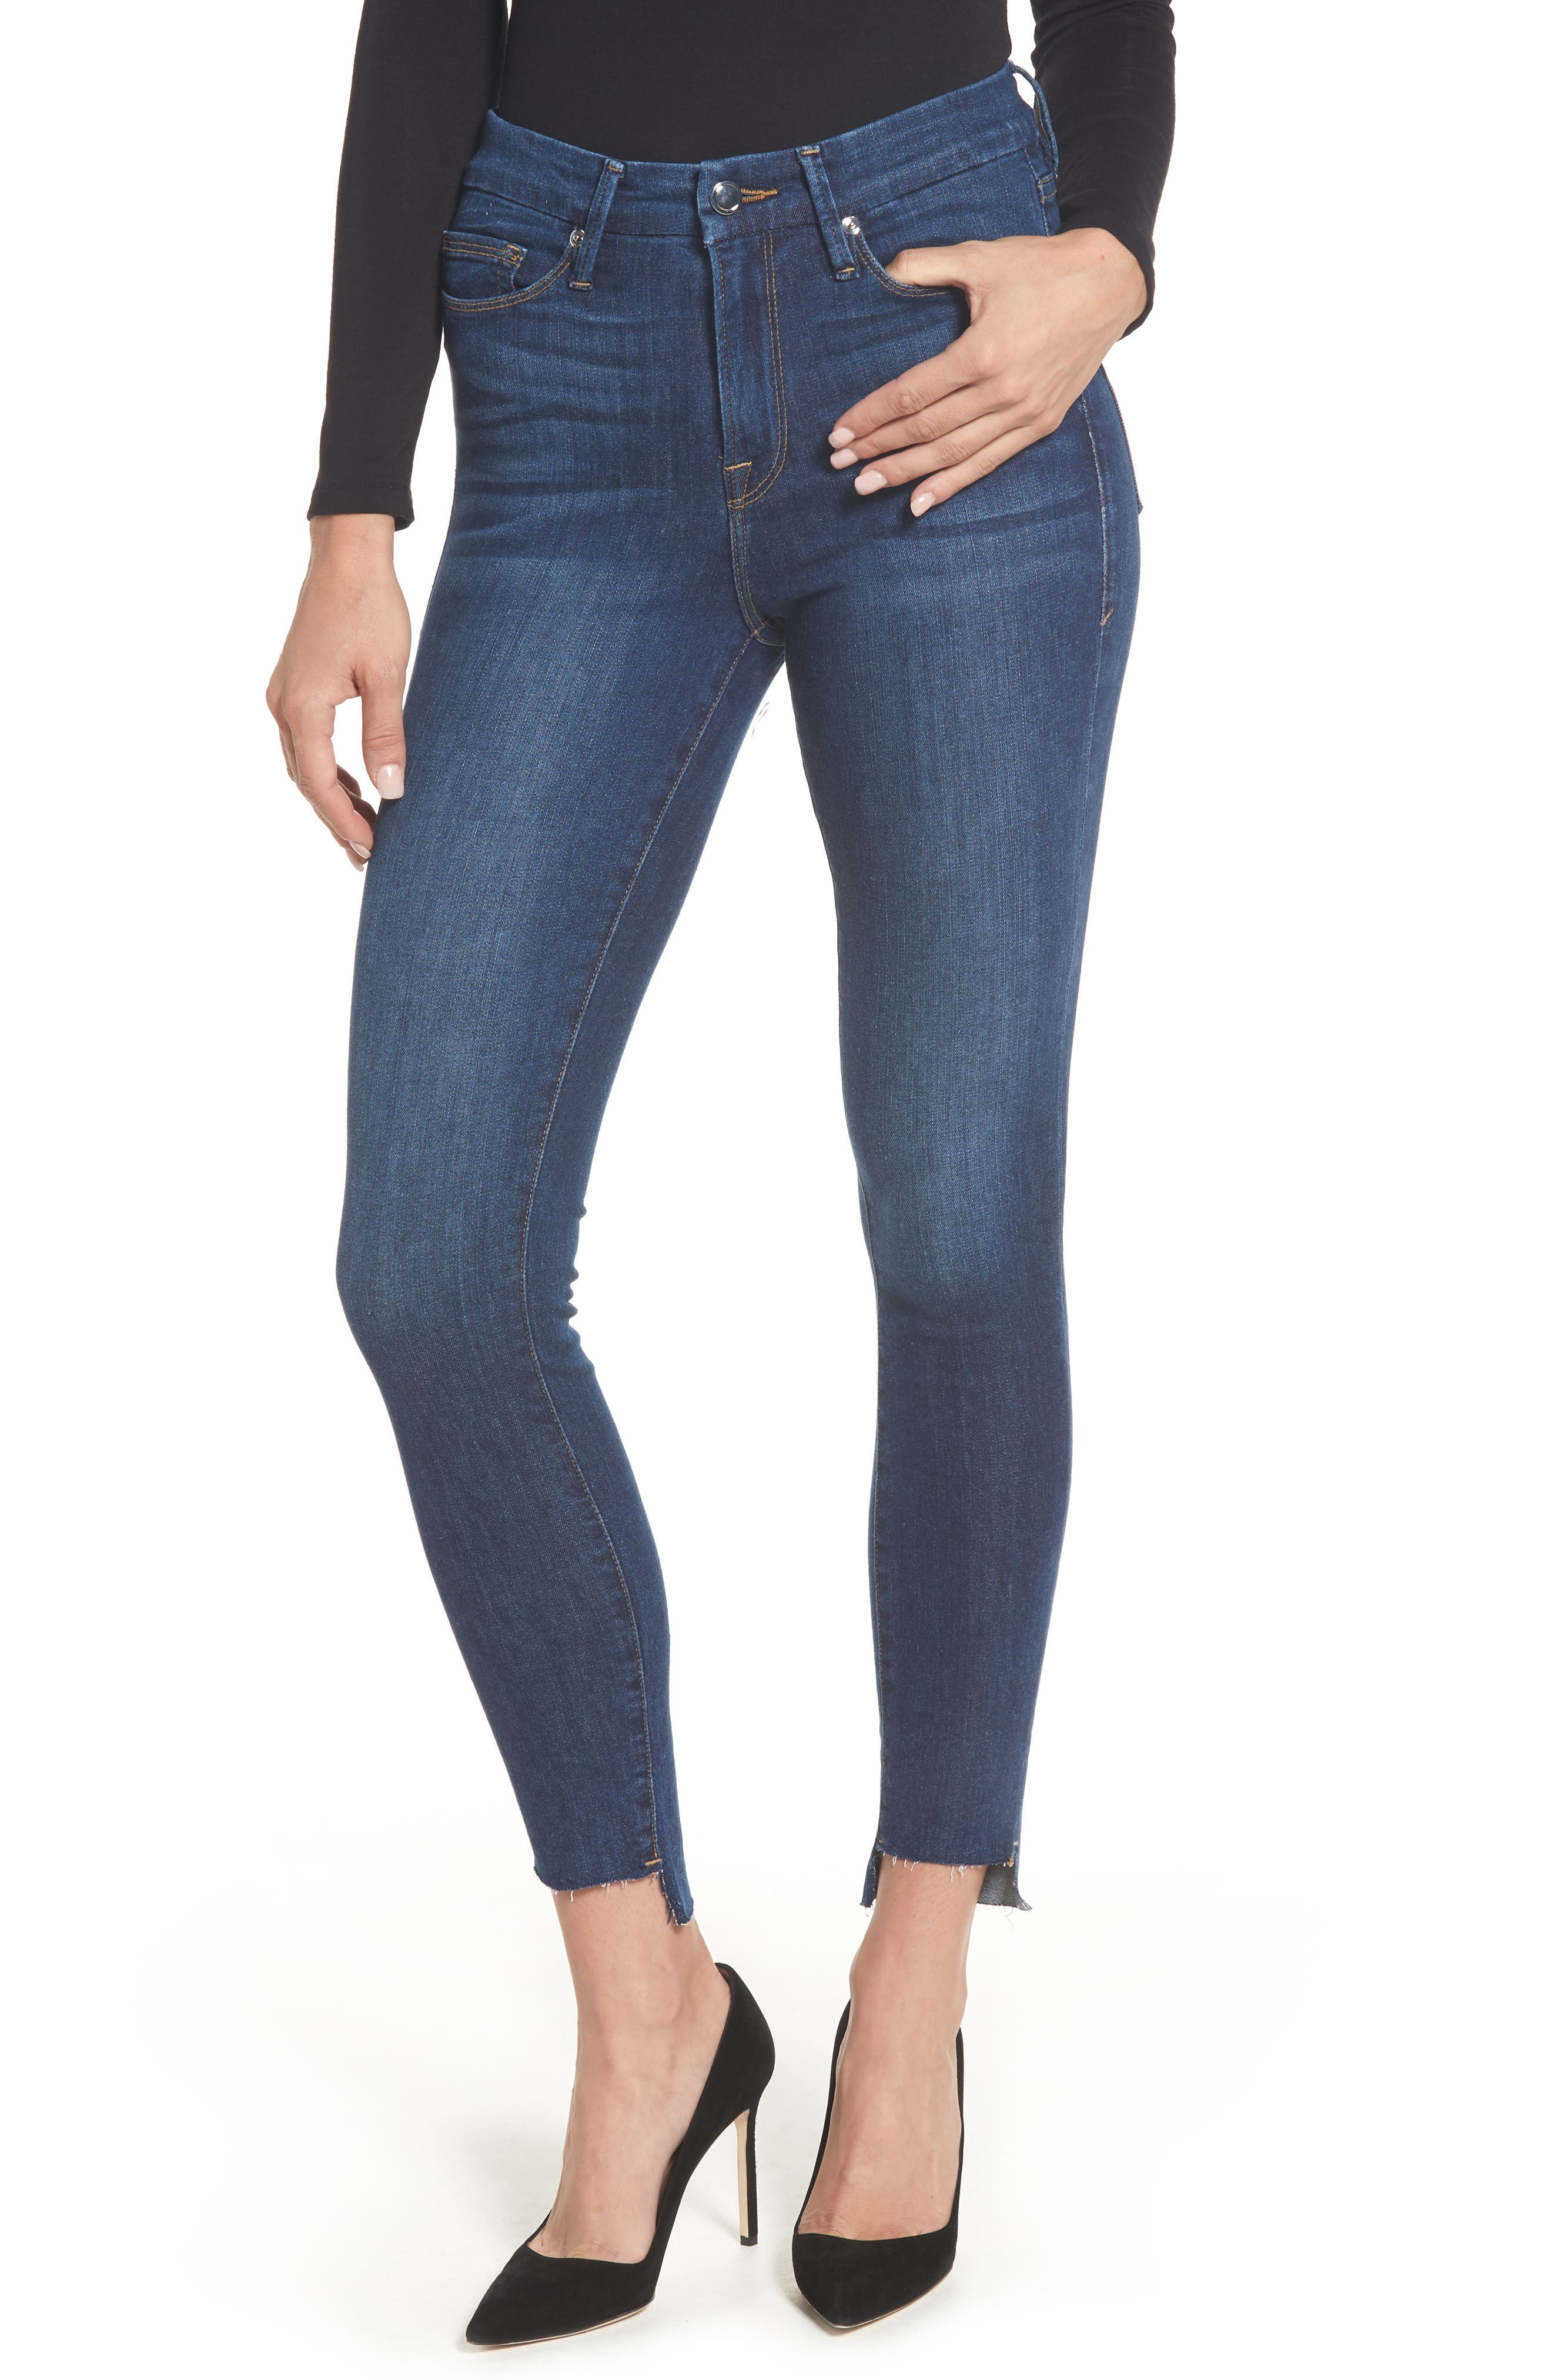 Many of our women's skinny jeans have an embroidered label in lieu of a tag for added comfort. For extra softness, choose Old Navy skinny jeans for women in enzyme-treated denim. Old Navy Skinny Denim Style Tips. Replace any denim bottom in your closet with our women's skinny jeans for a fresh, trendy take on an outfit. Old Navy's skinny jeans for women make showing off your favorite boots or heels a .